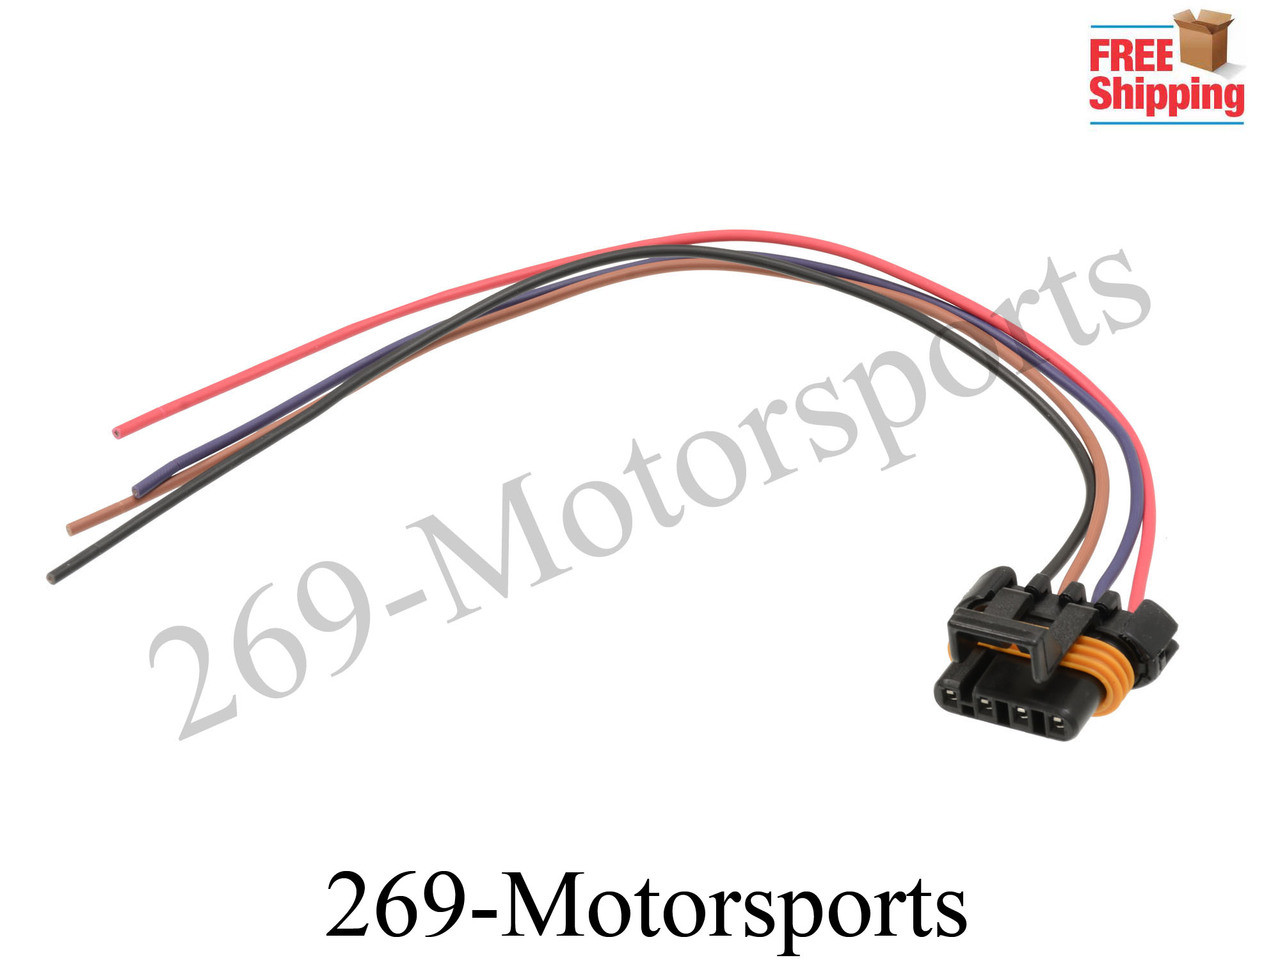 medium resolution of o2 oxygen sensor wiring harness connector pigtail for gm camaro firebird ls1 lt1